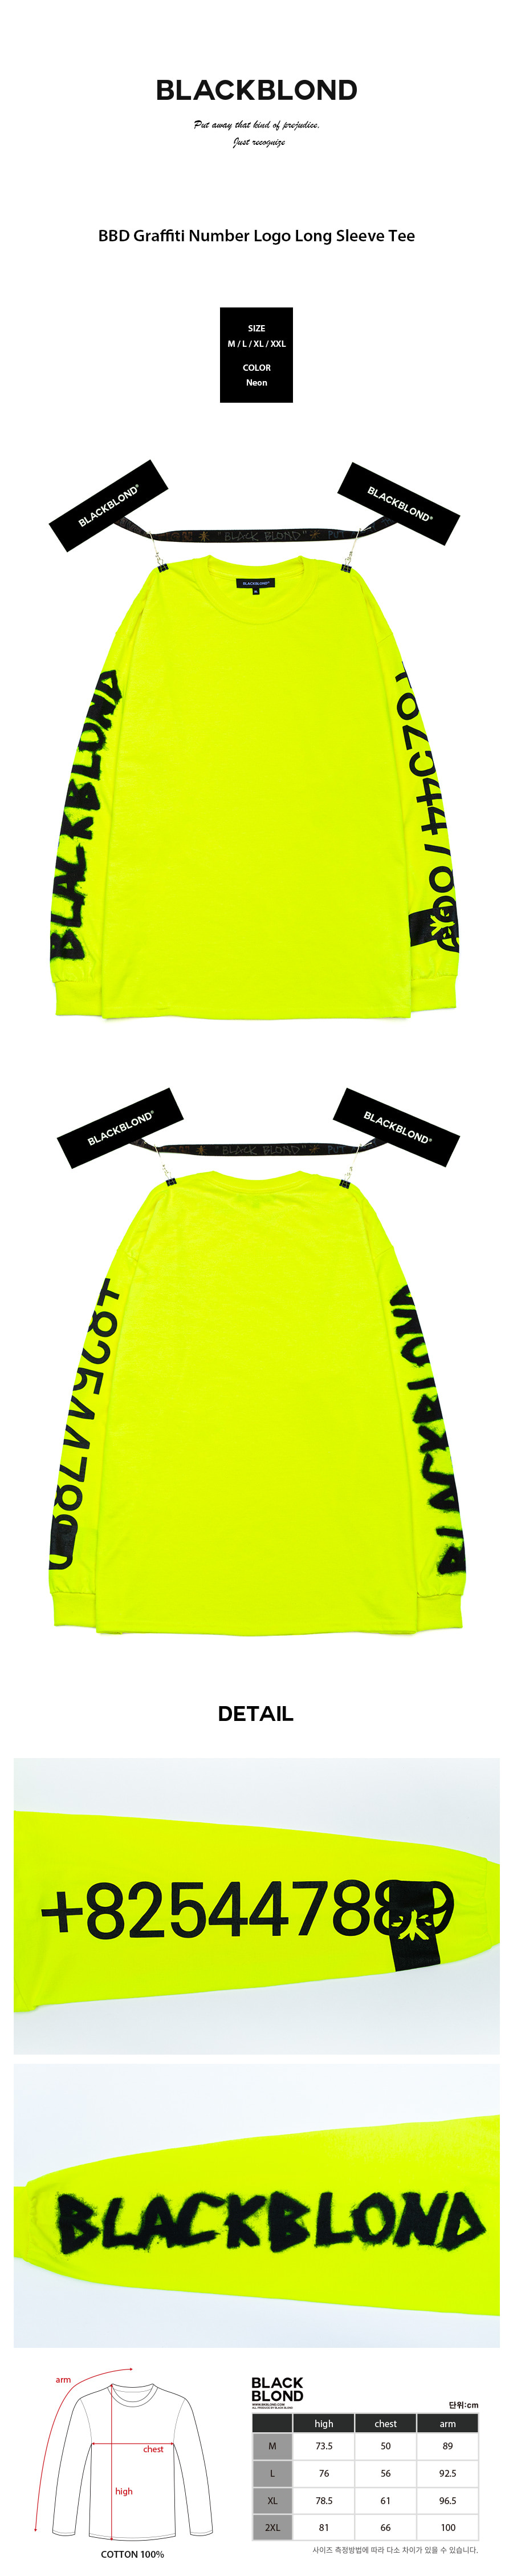 BLACKBLOND - BBD Graffiti Number Logo Long Sleeve Tee (Neon)